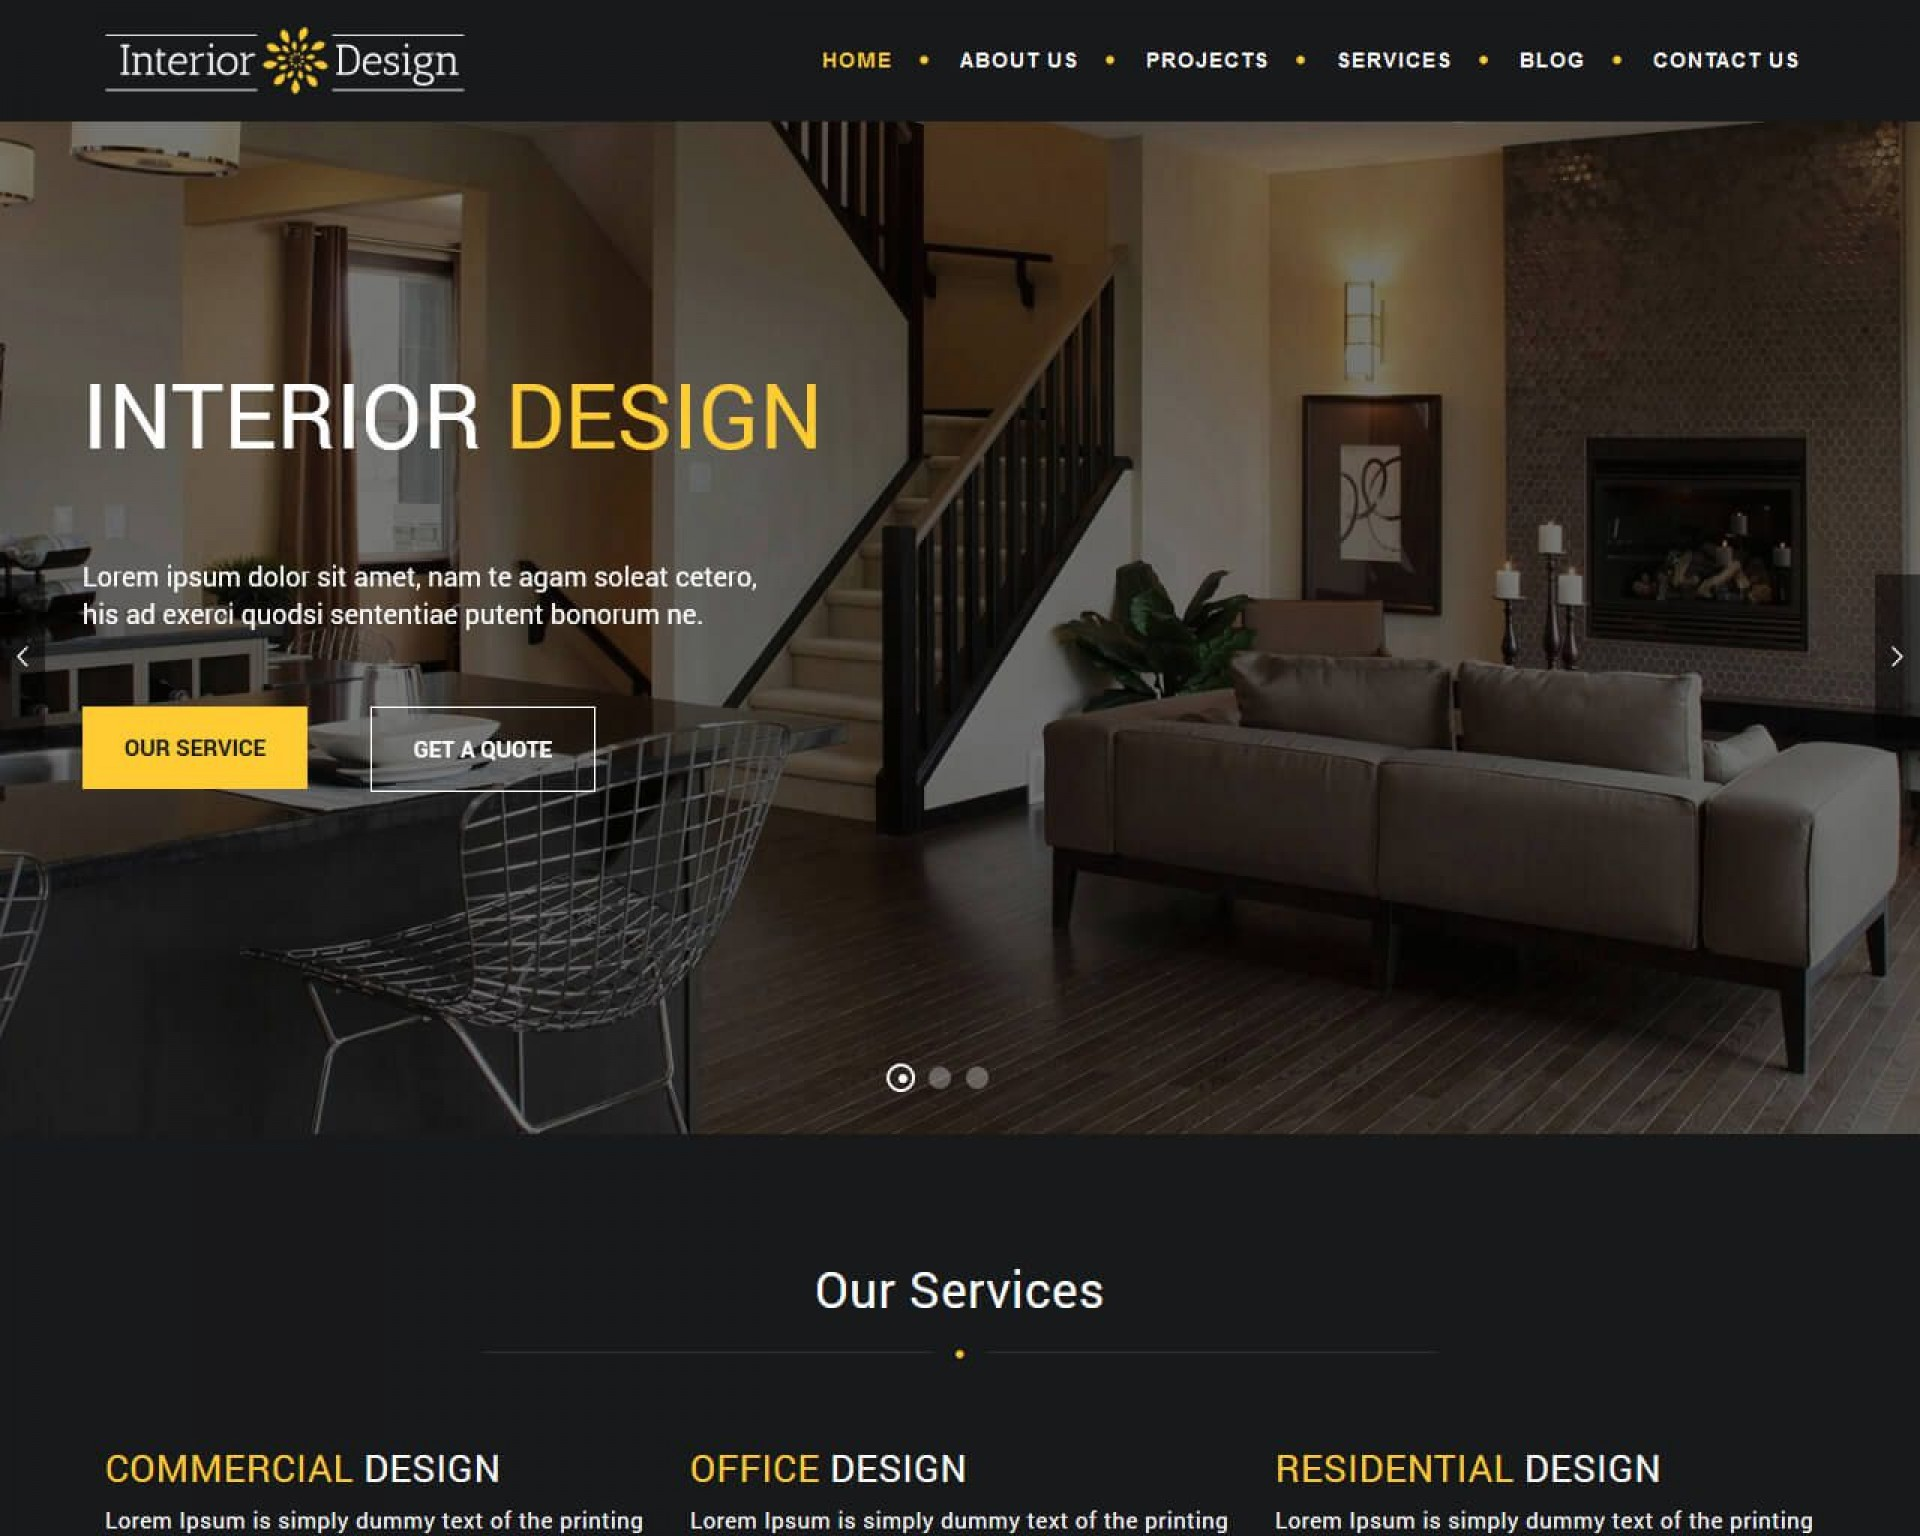 010 Stirring Interior Design Website Template Photo  Templates Company Free Download Html1920